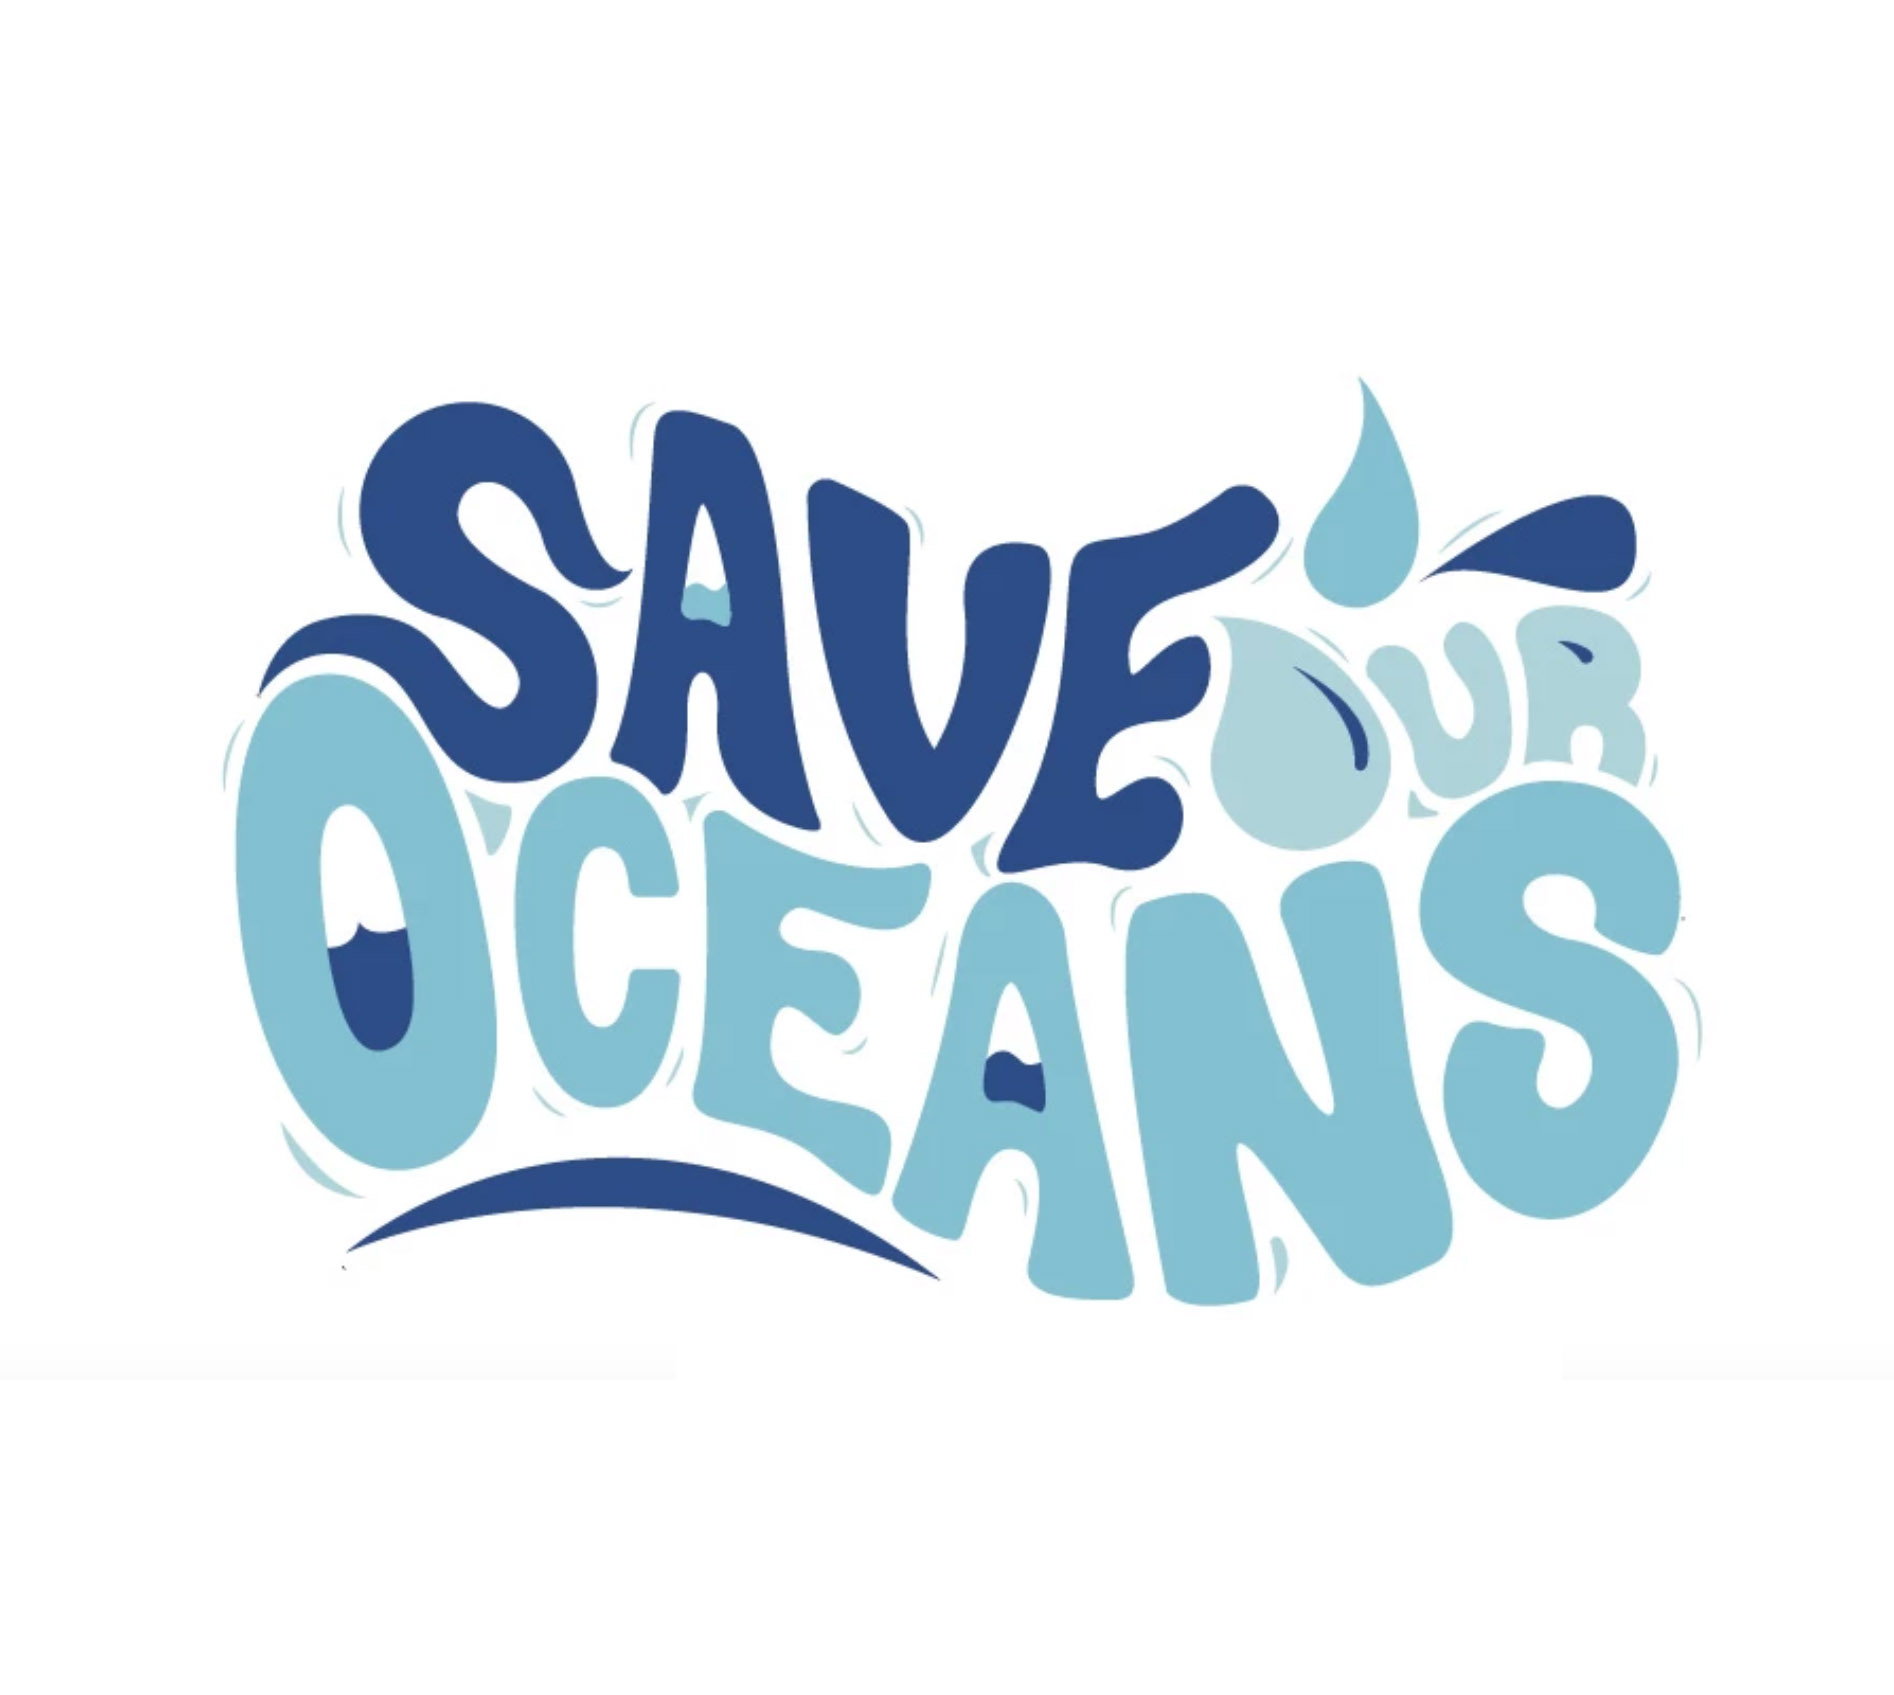 Joelle Save Our Oceans